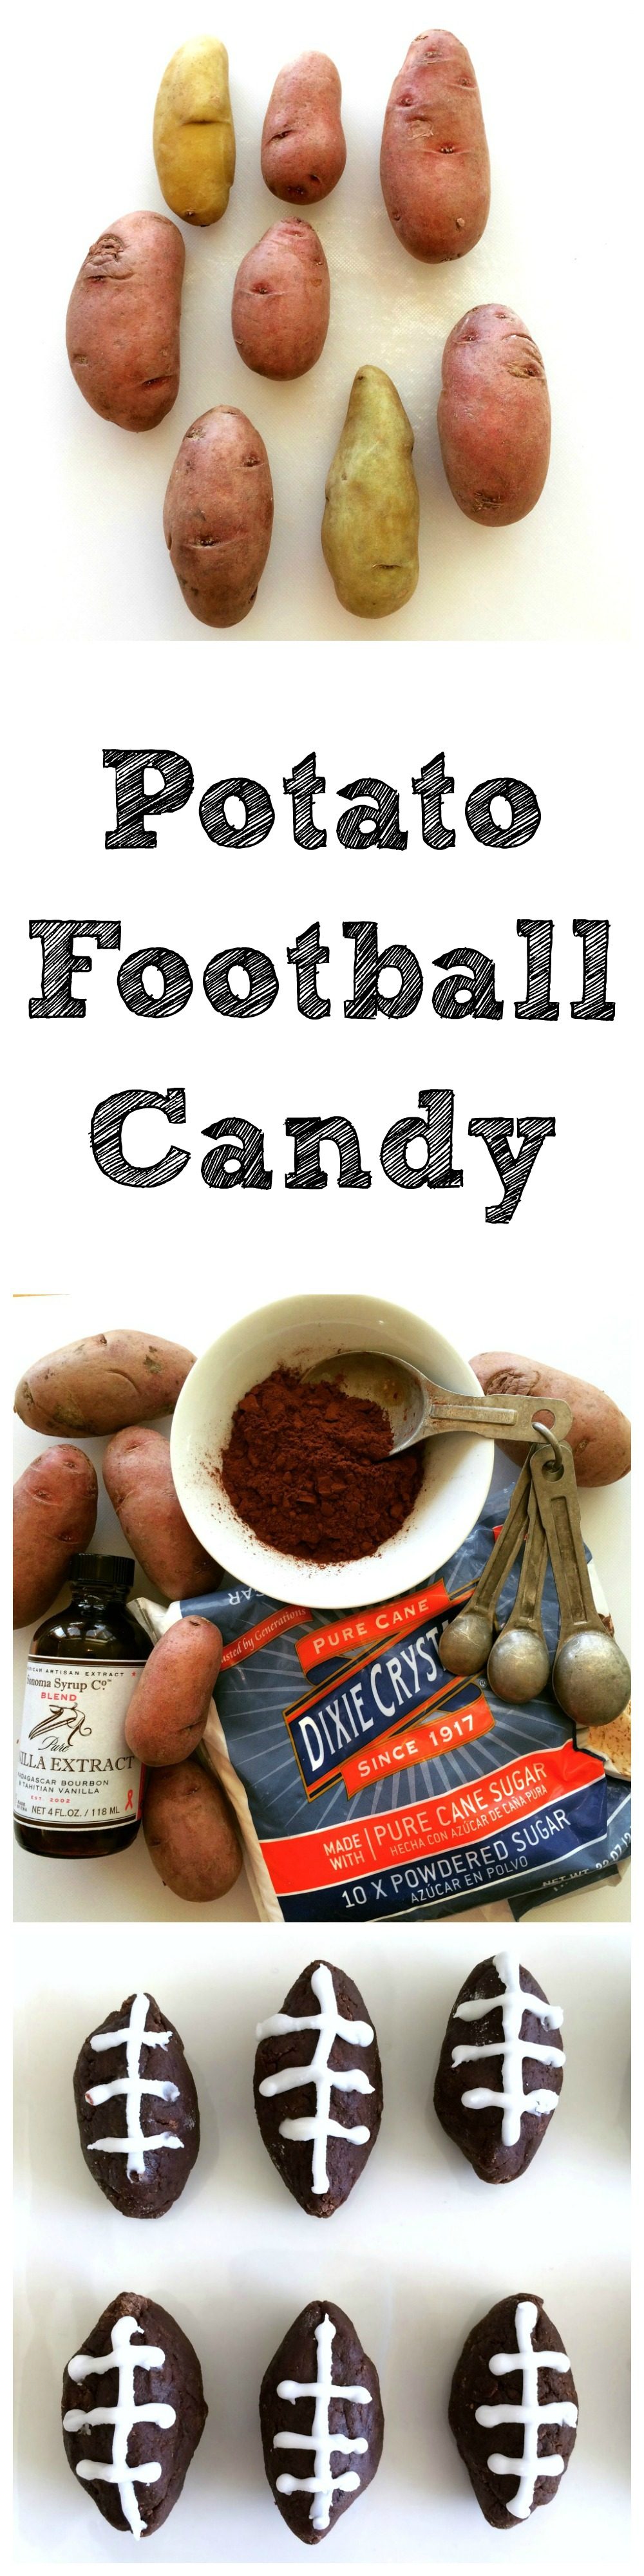 Potato Football Candy recipe for game day on ShockinglyDelicious.com